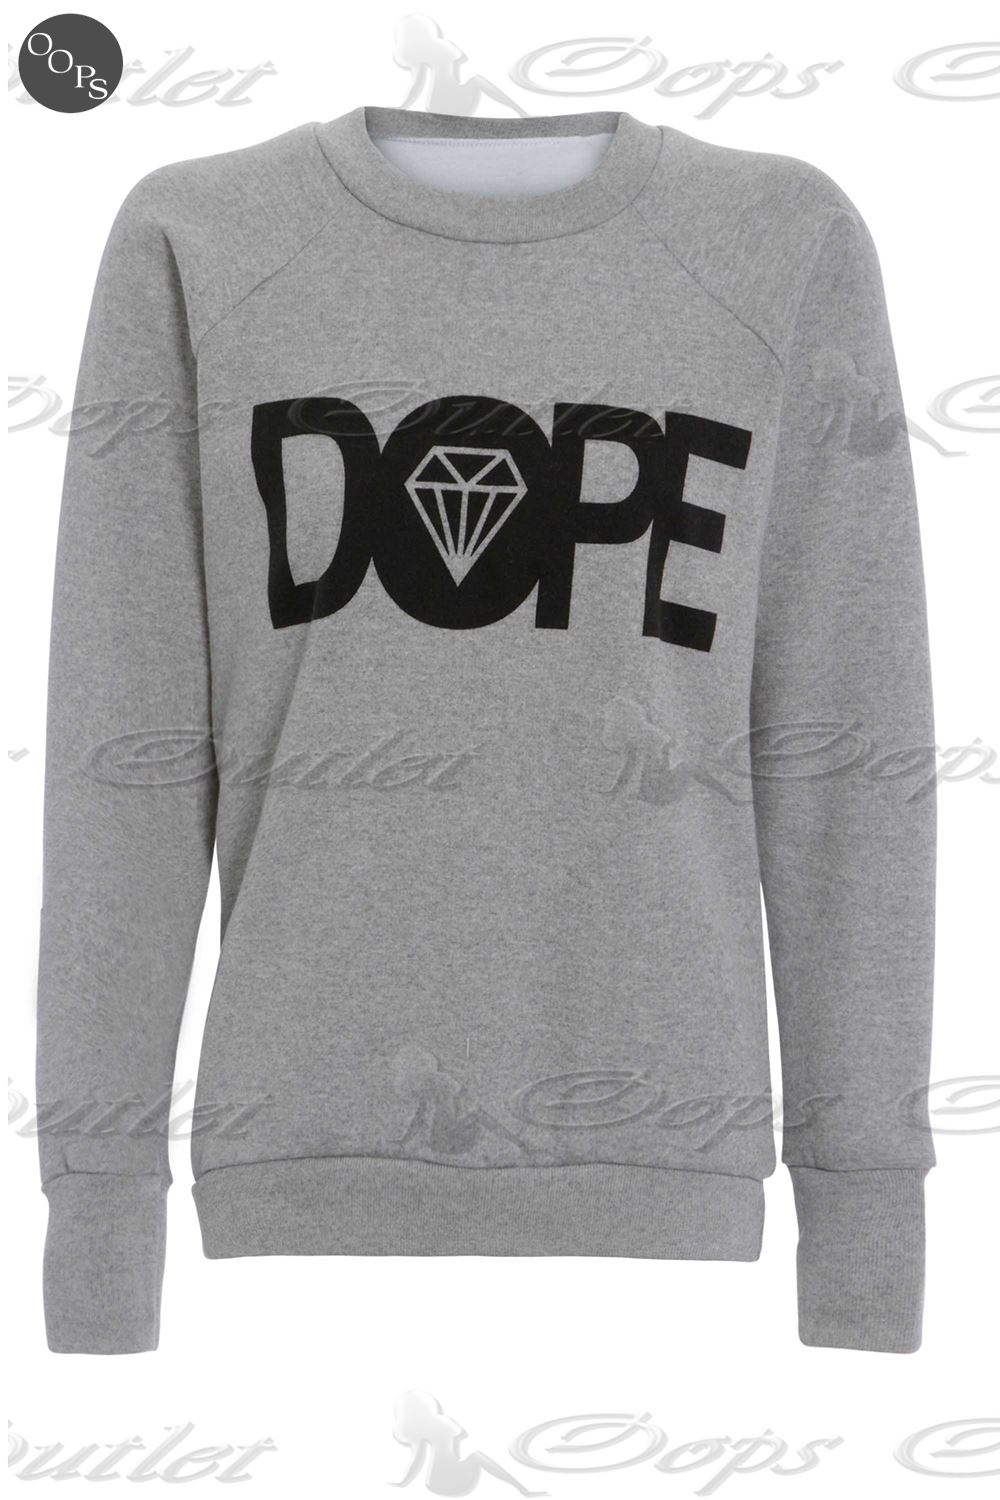 Womens-Ladies-Sweatshirt-Cocaine-And-Caviar-Printed-Jumper-Pullover-T-Shirt-Top